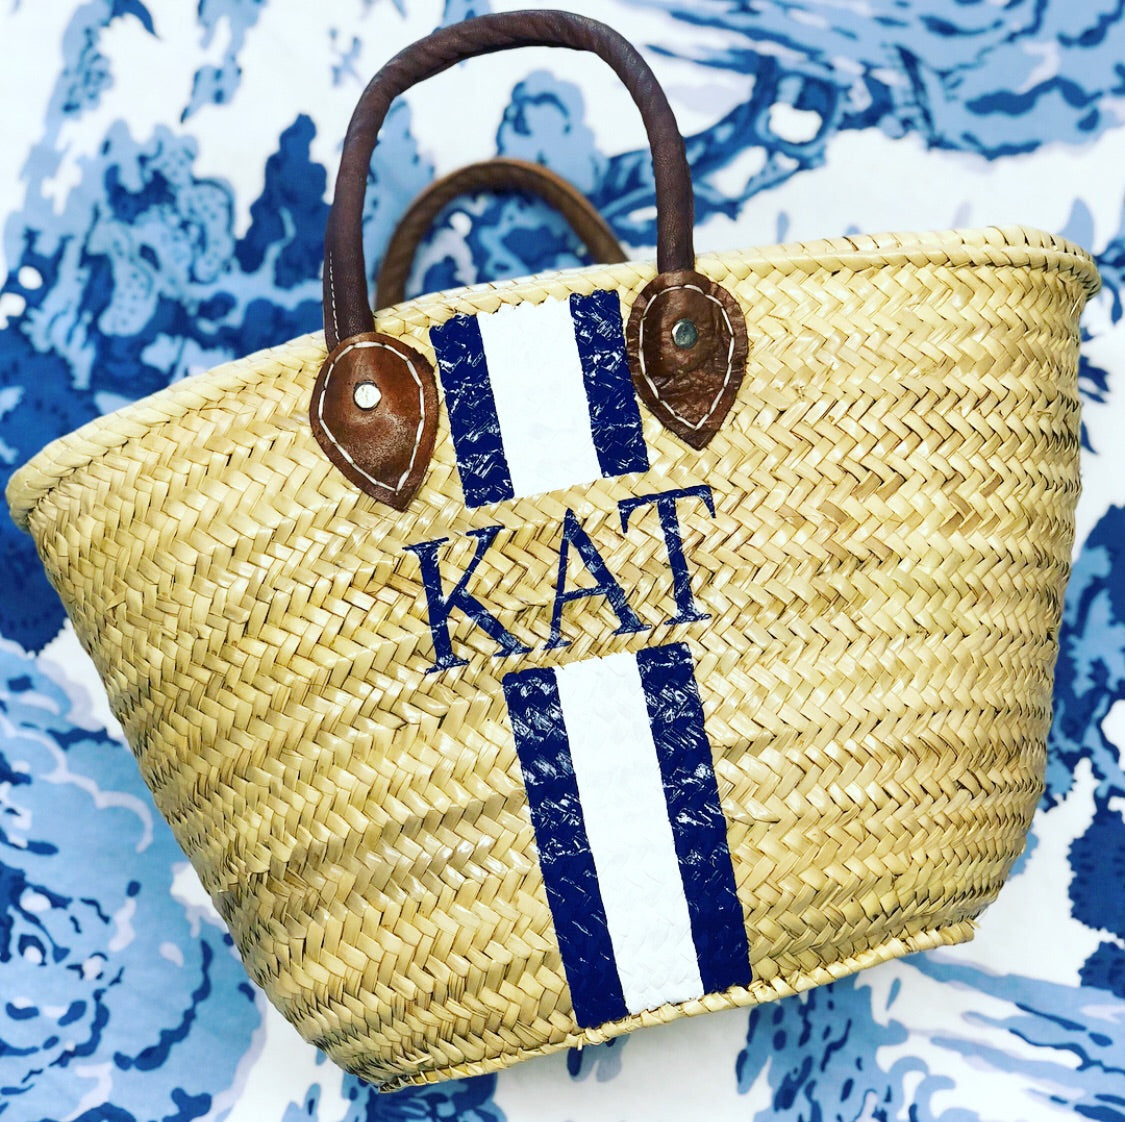 Painted Straw Tote